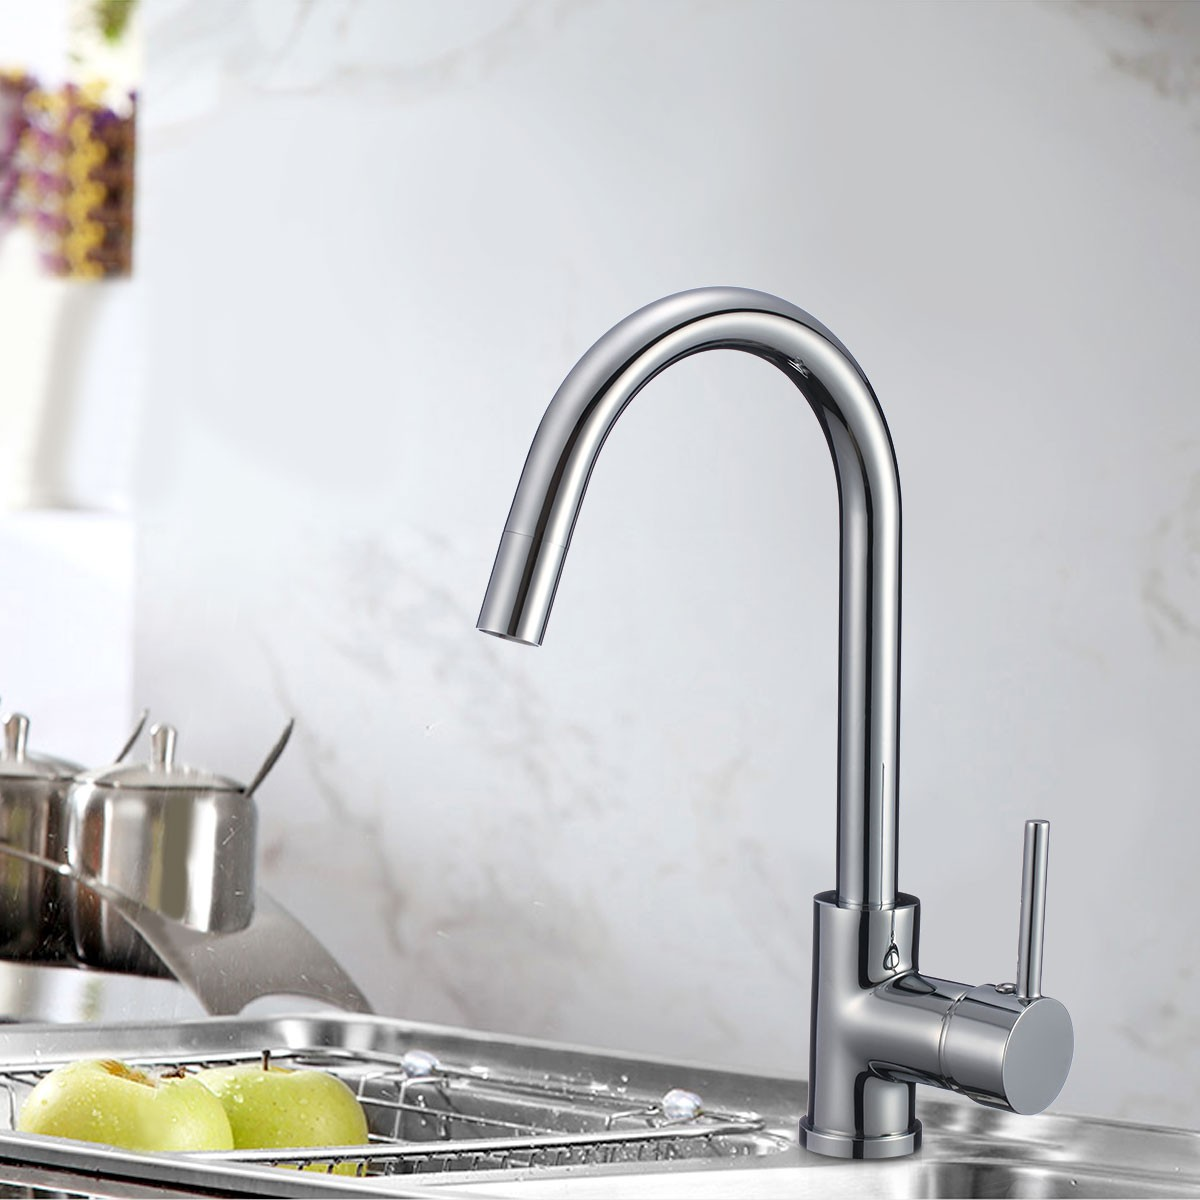 Chrome finished brass kitchen faucet 82h37 chr